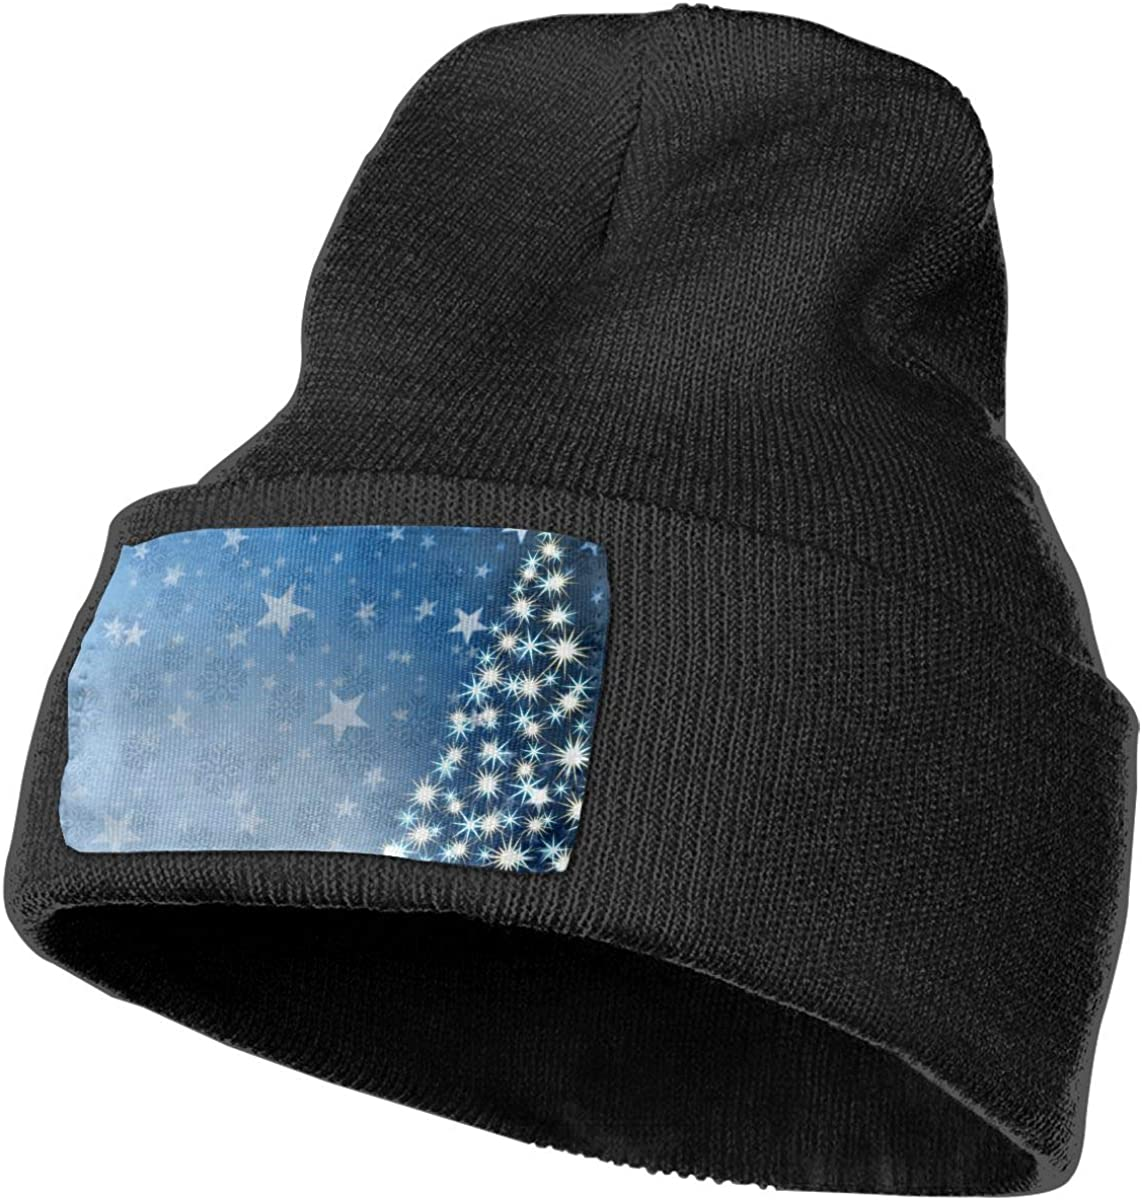 Christmas Stars Christmas Tree On Snowflakes Hat for Men and Women Winter Warm Hats Knit Slouchy Thick Skull Cap Black